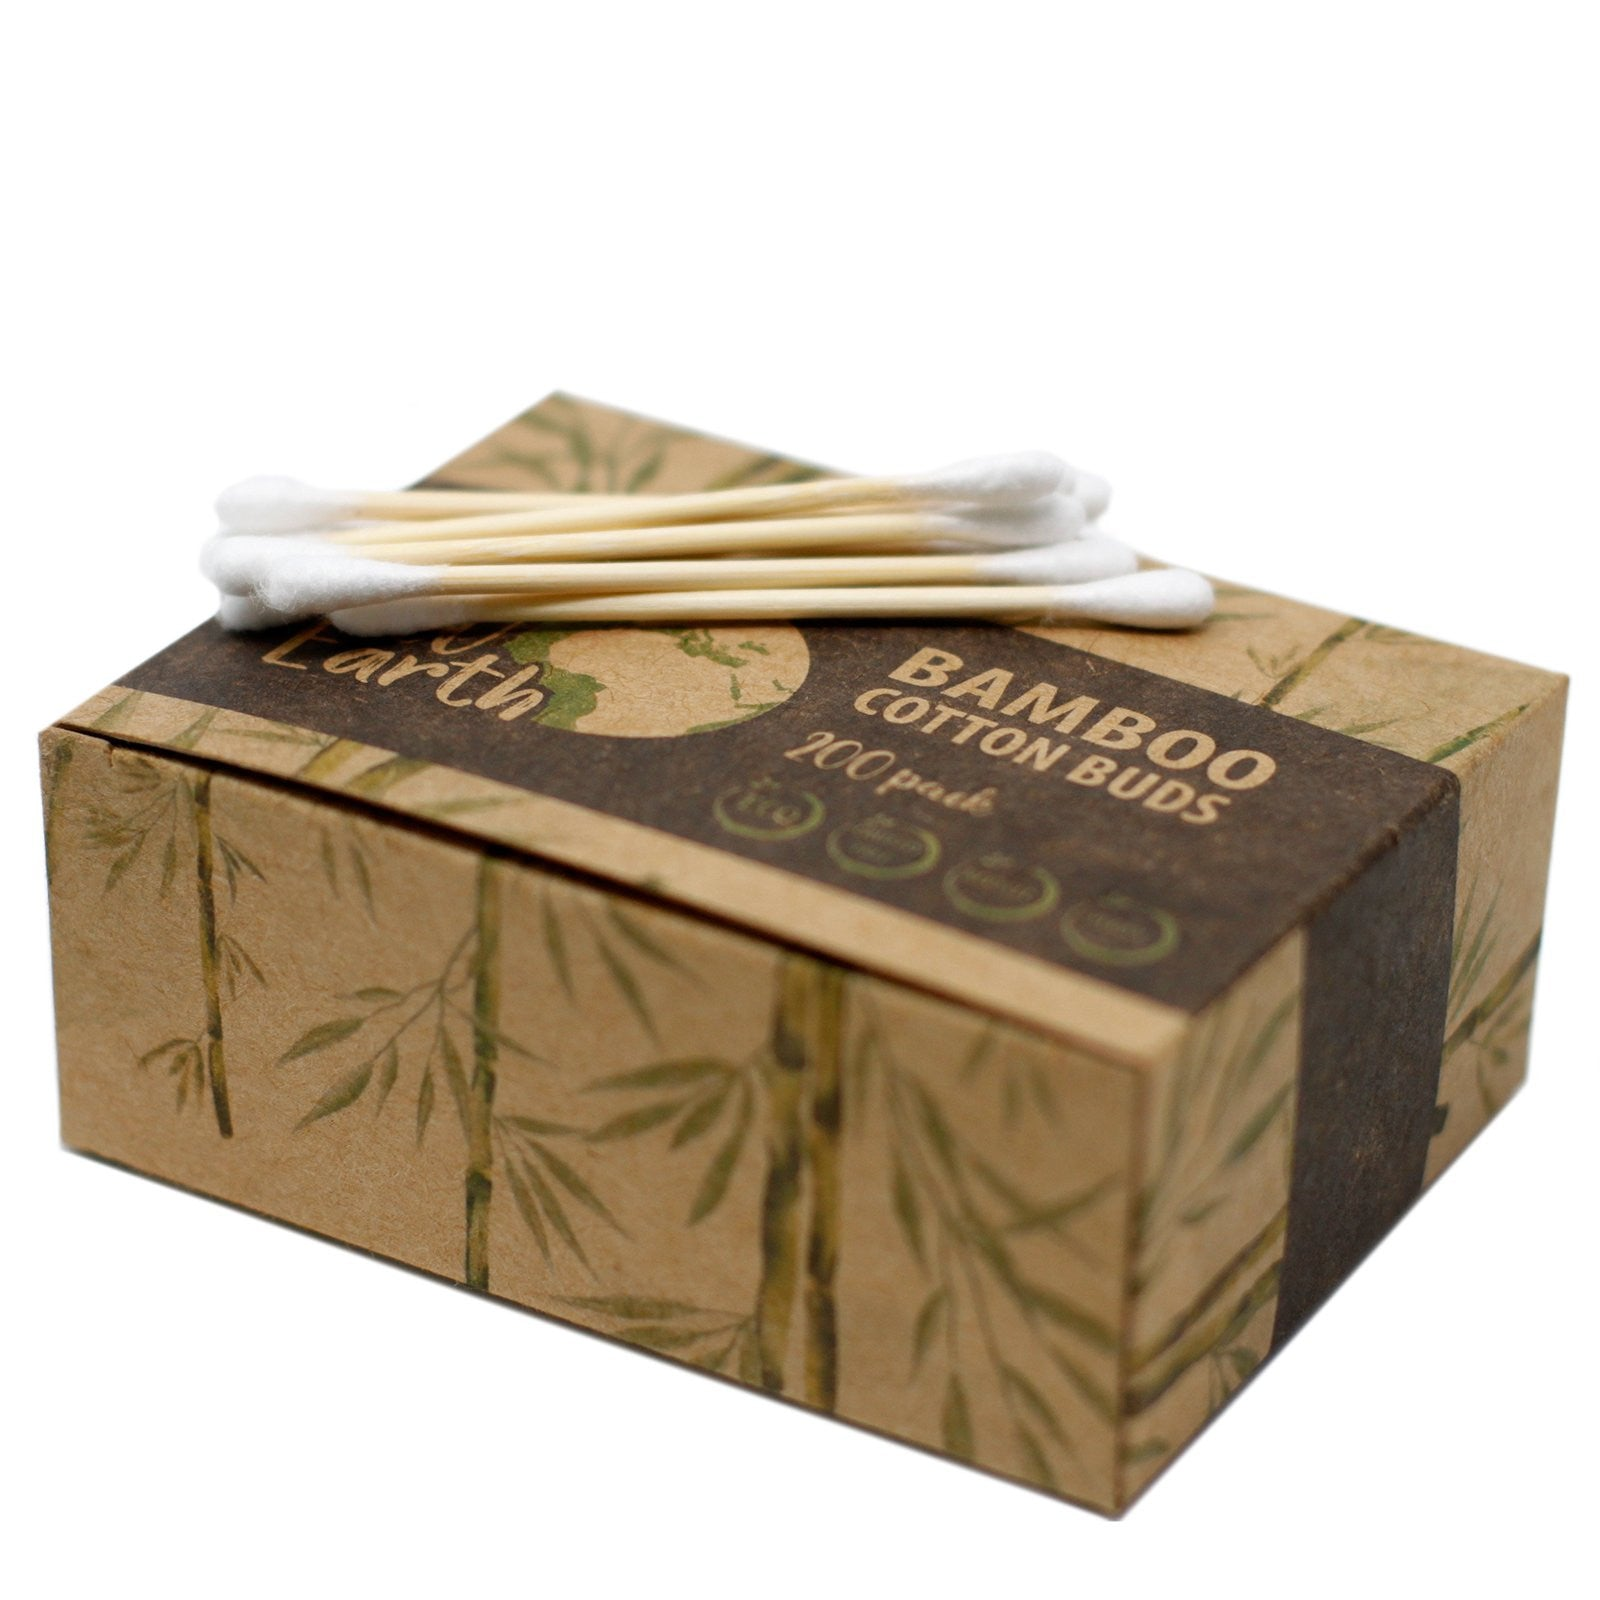 Bamboo Cotton Buds.  Box of 200 .